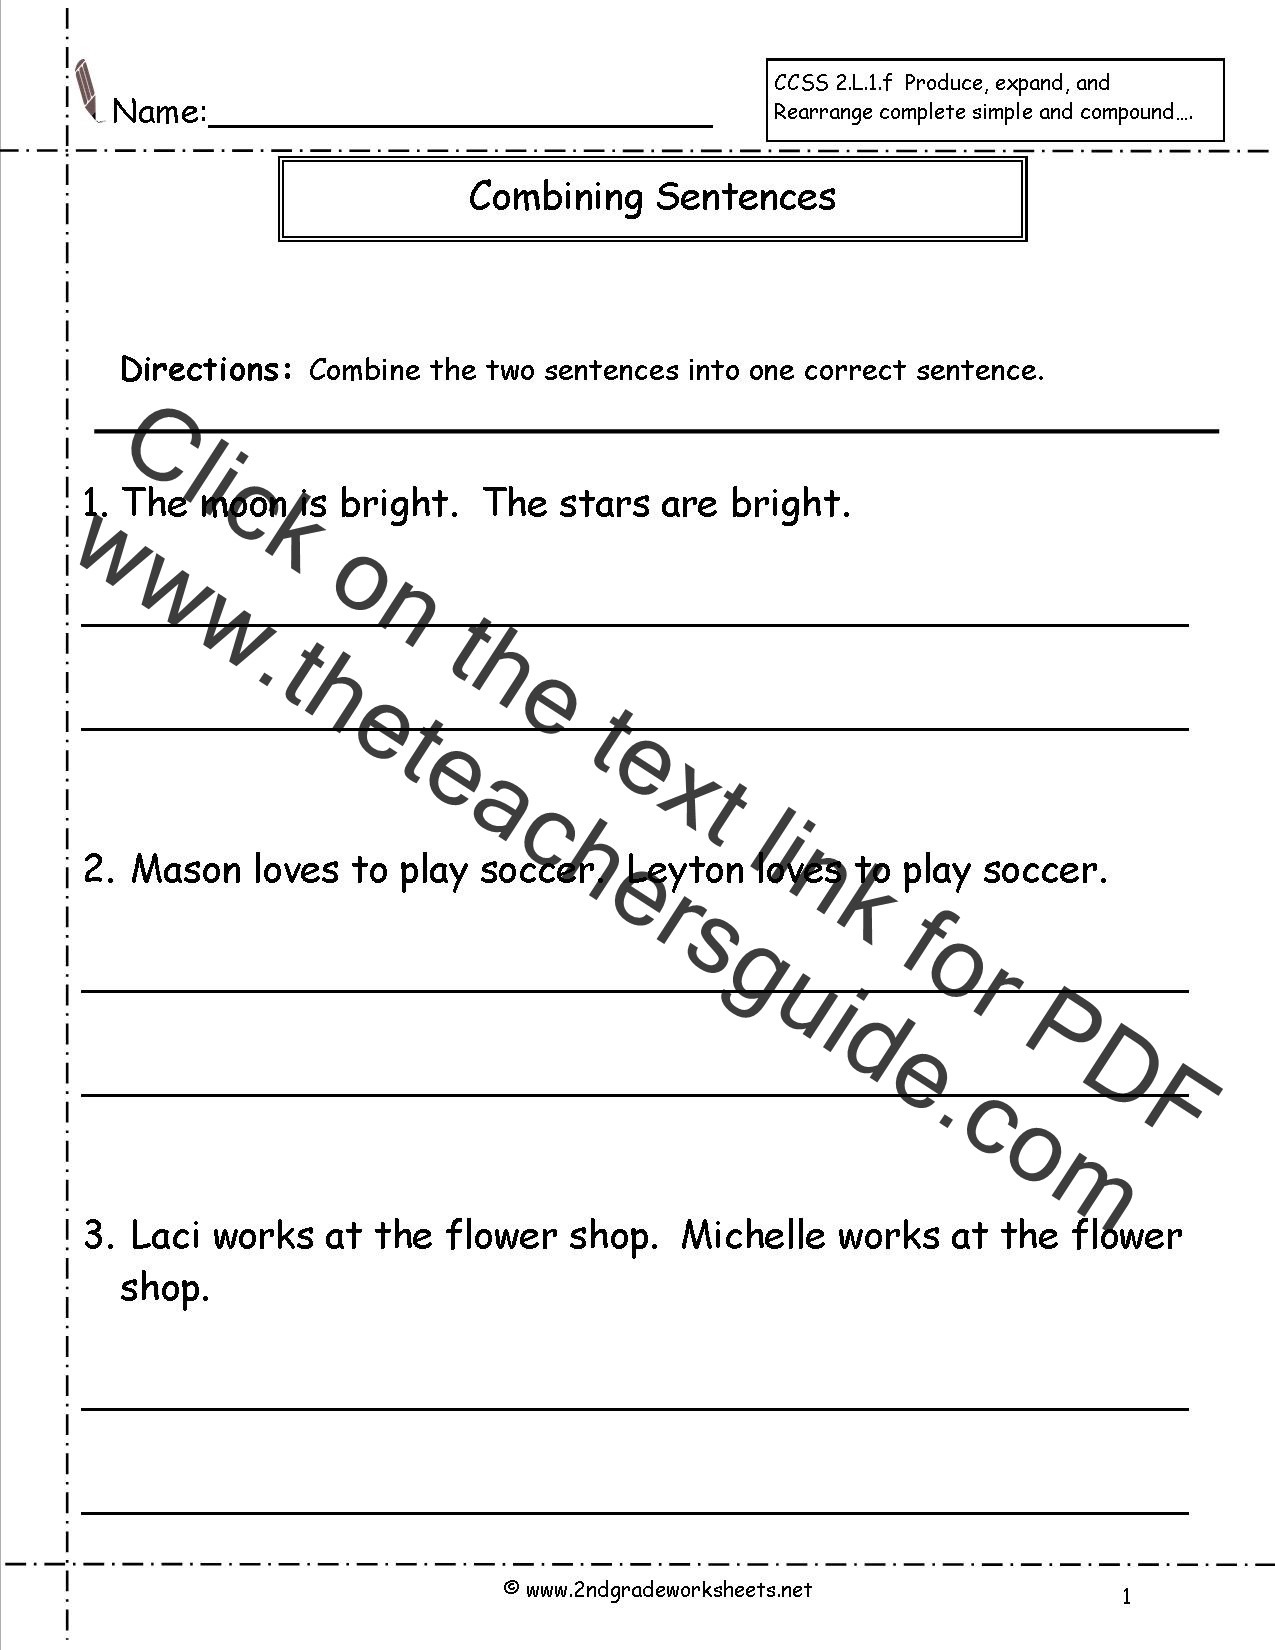 30 Simple And Compound Sentences Worksheet